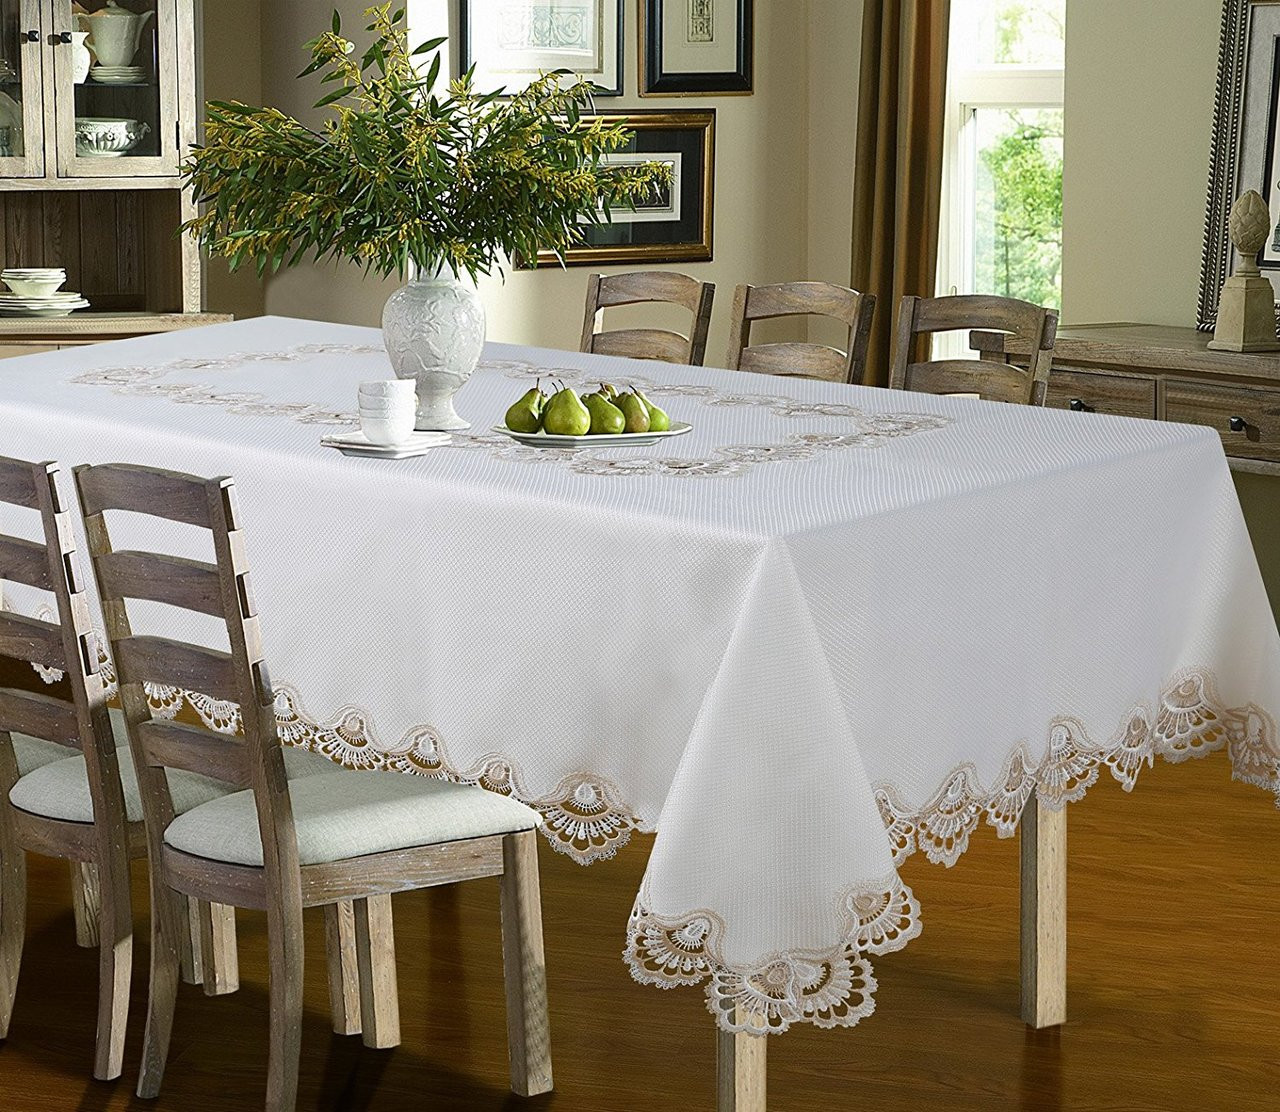 Luxury Crest Embroidered Table cloth-Gold ... & Luxury Crest Embroidered Table cloth Top Dinner Kitchen Table Cover ...